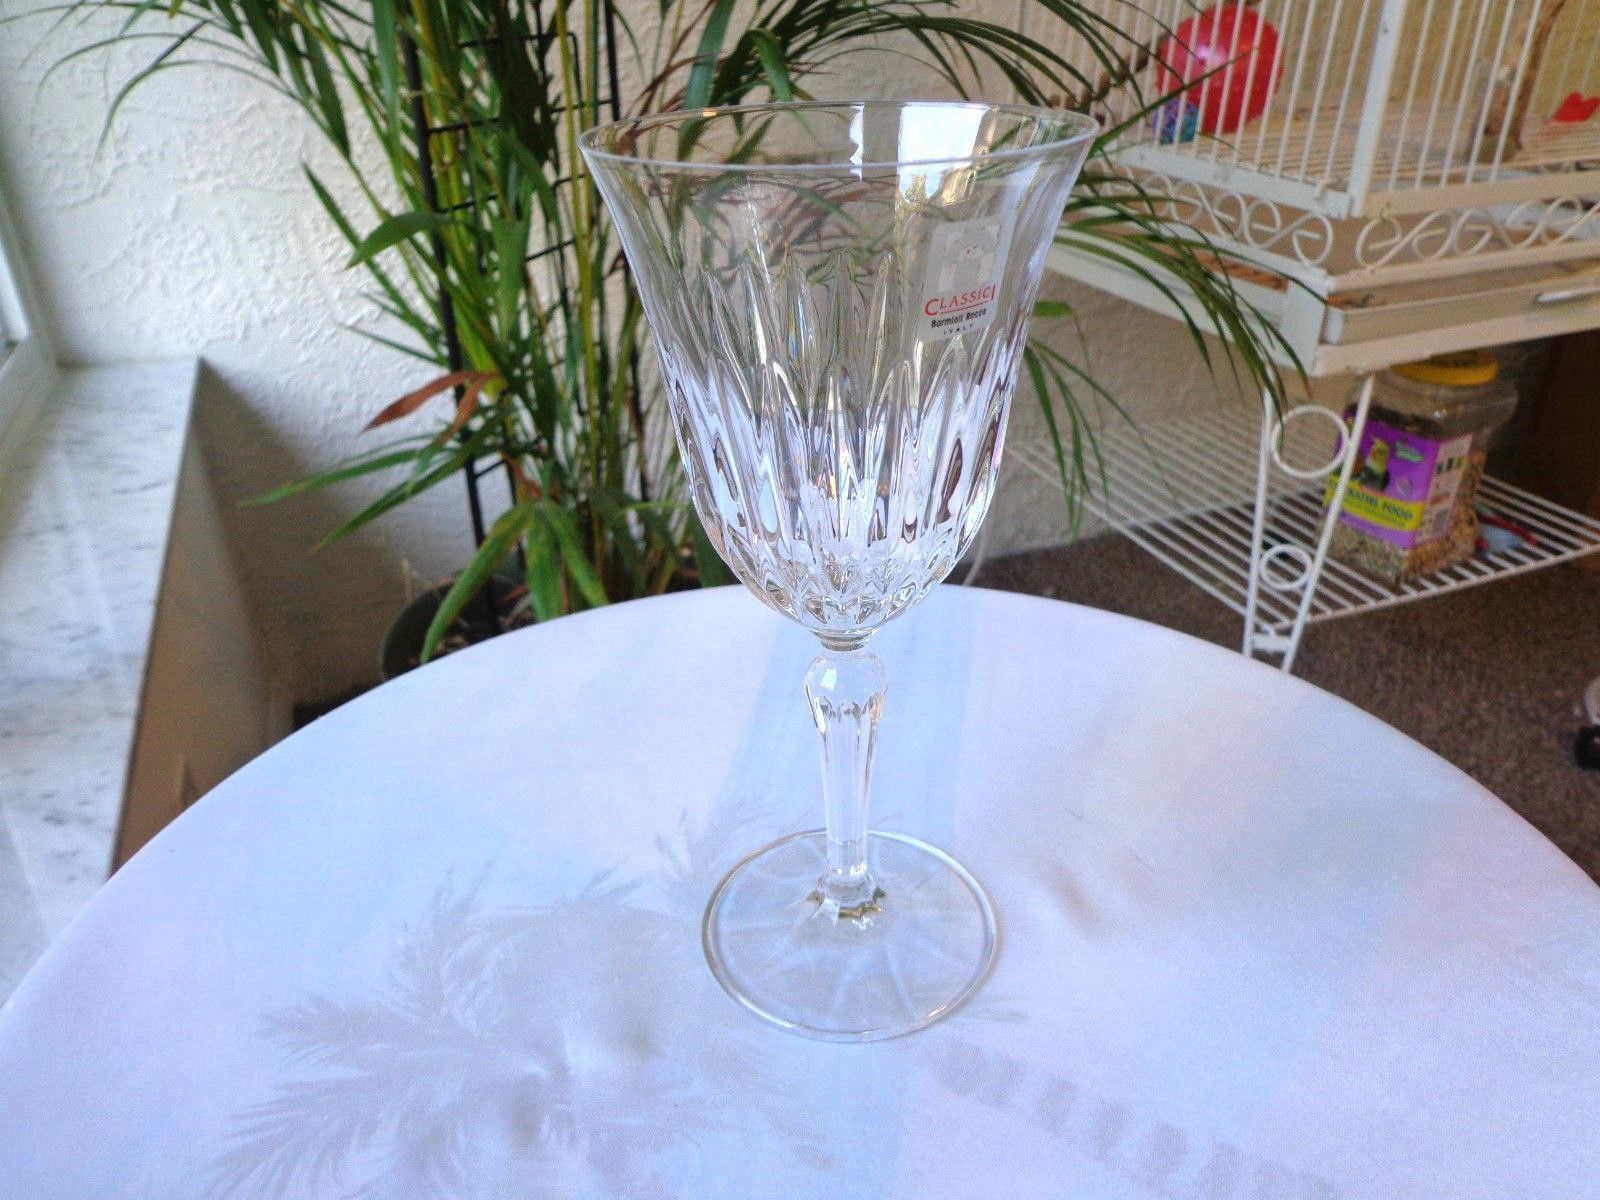 Bormioli Rocco Classic 1 Aida Pattern Clear Crystal White Wine Glass